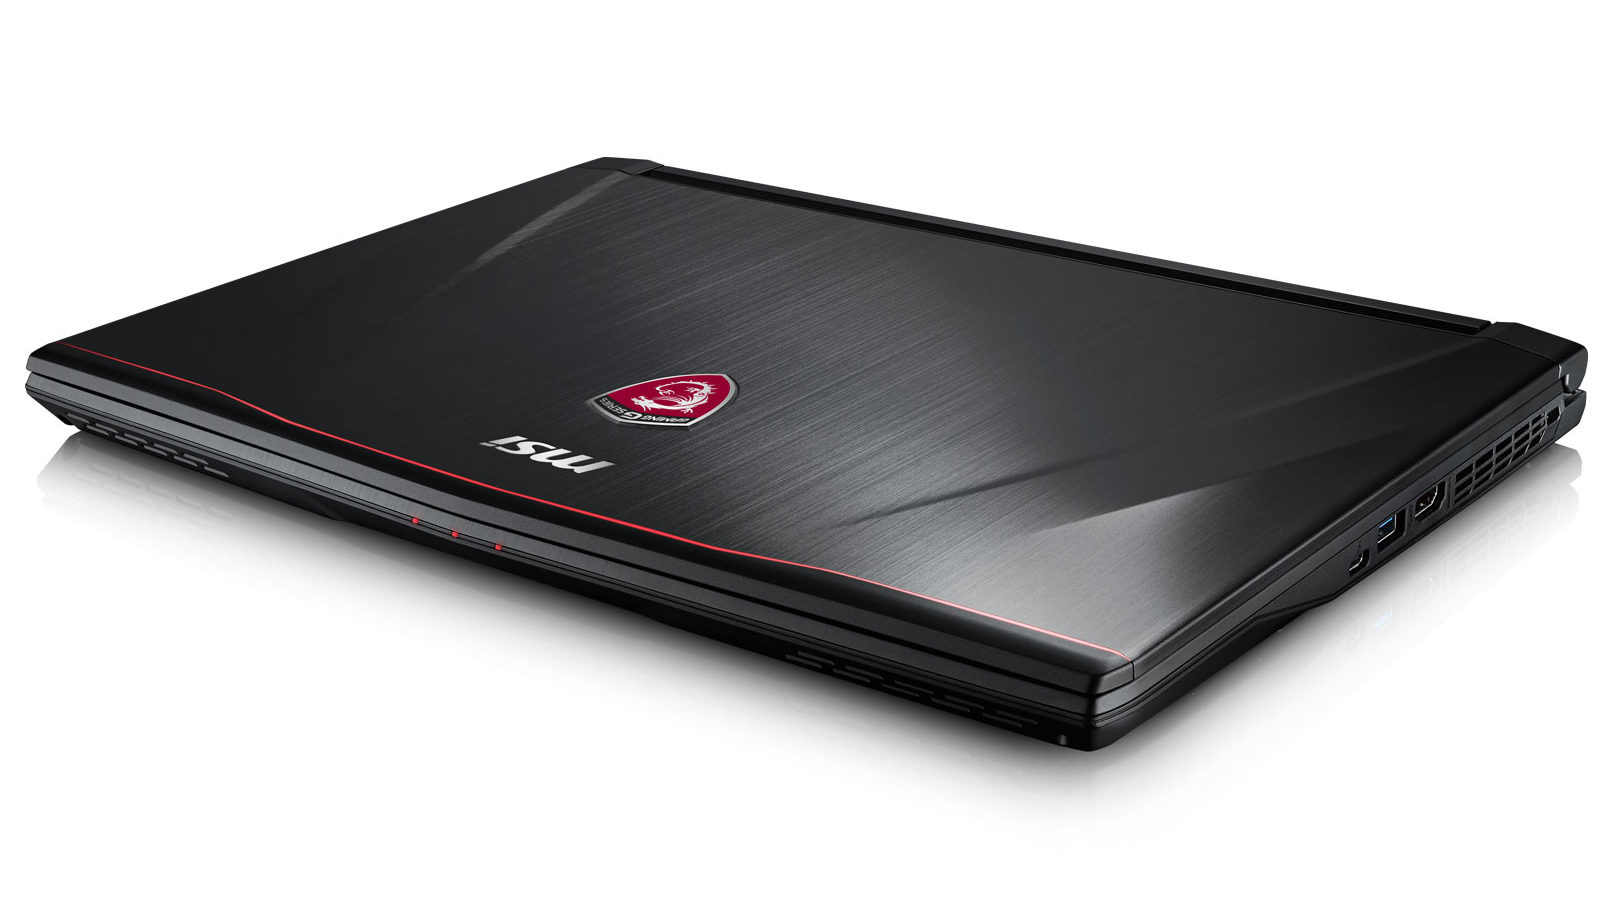 The sharp-looking MSI GS43VR gaming notebook.